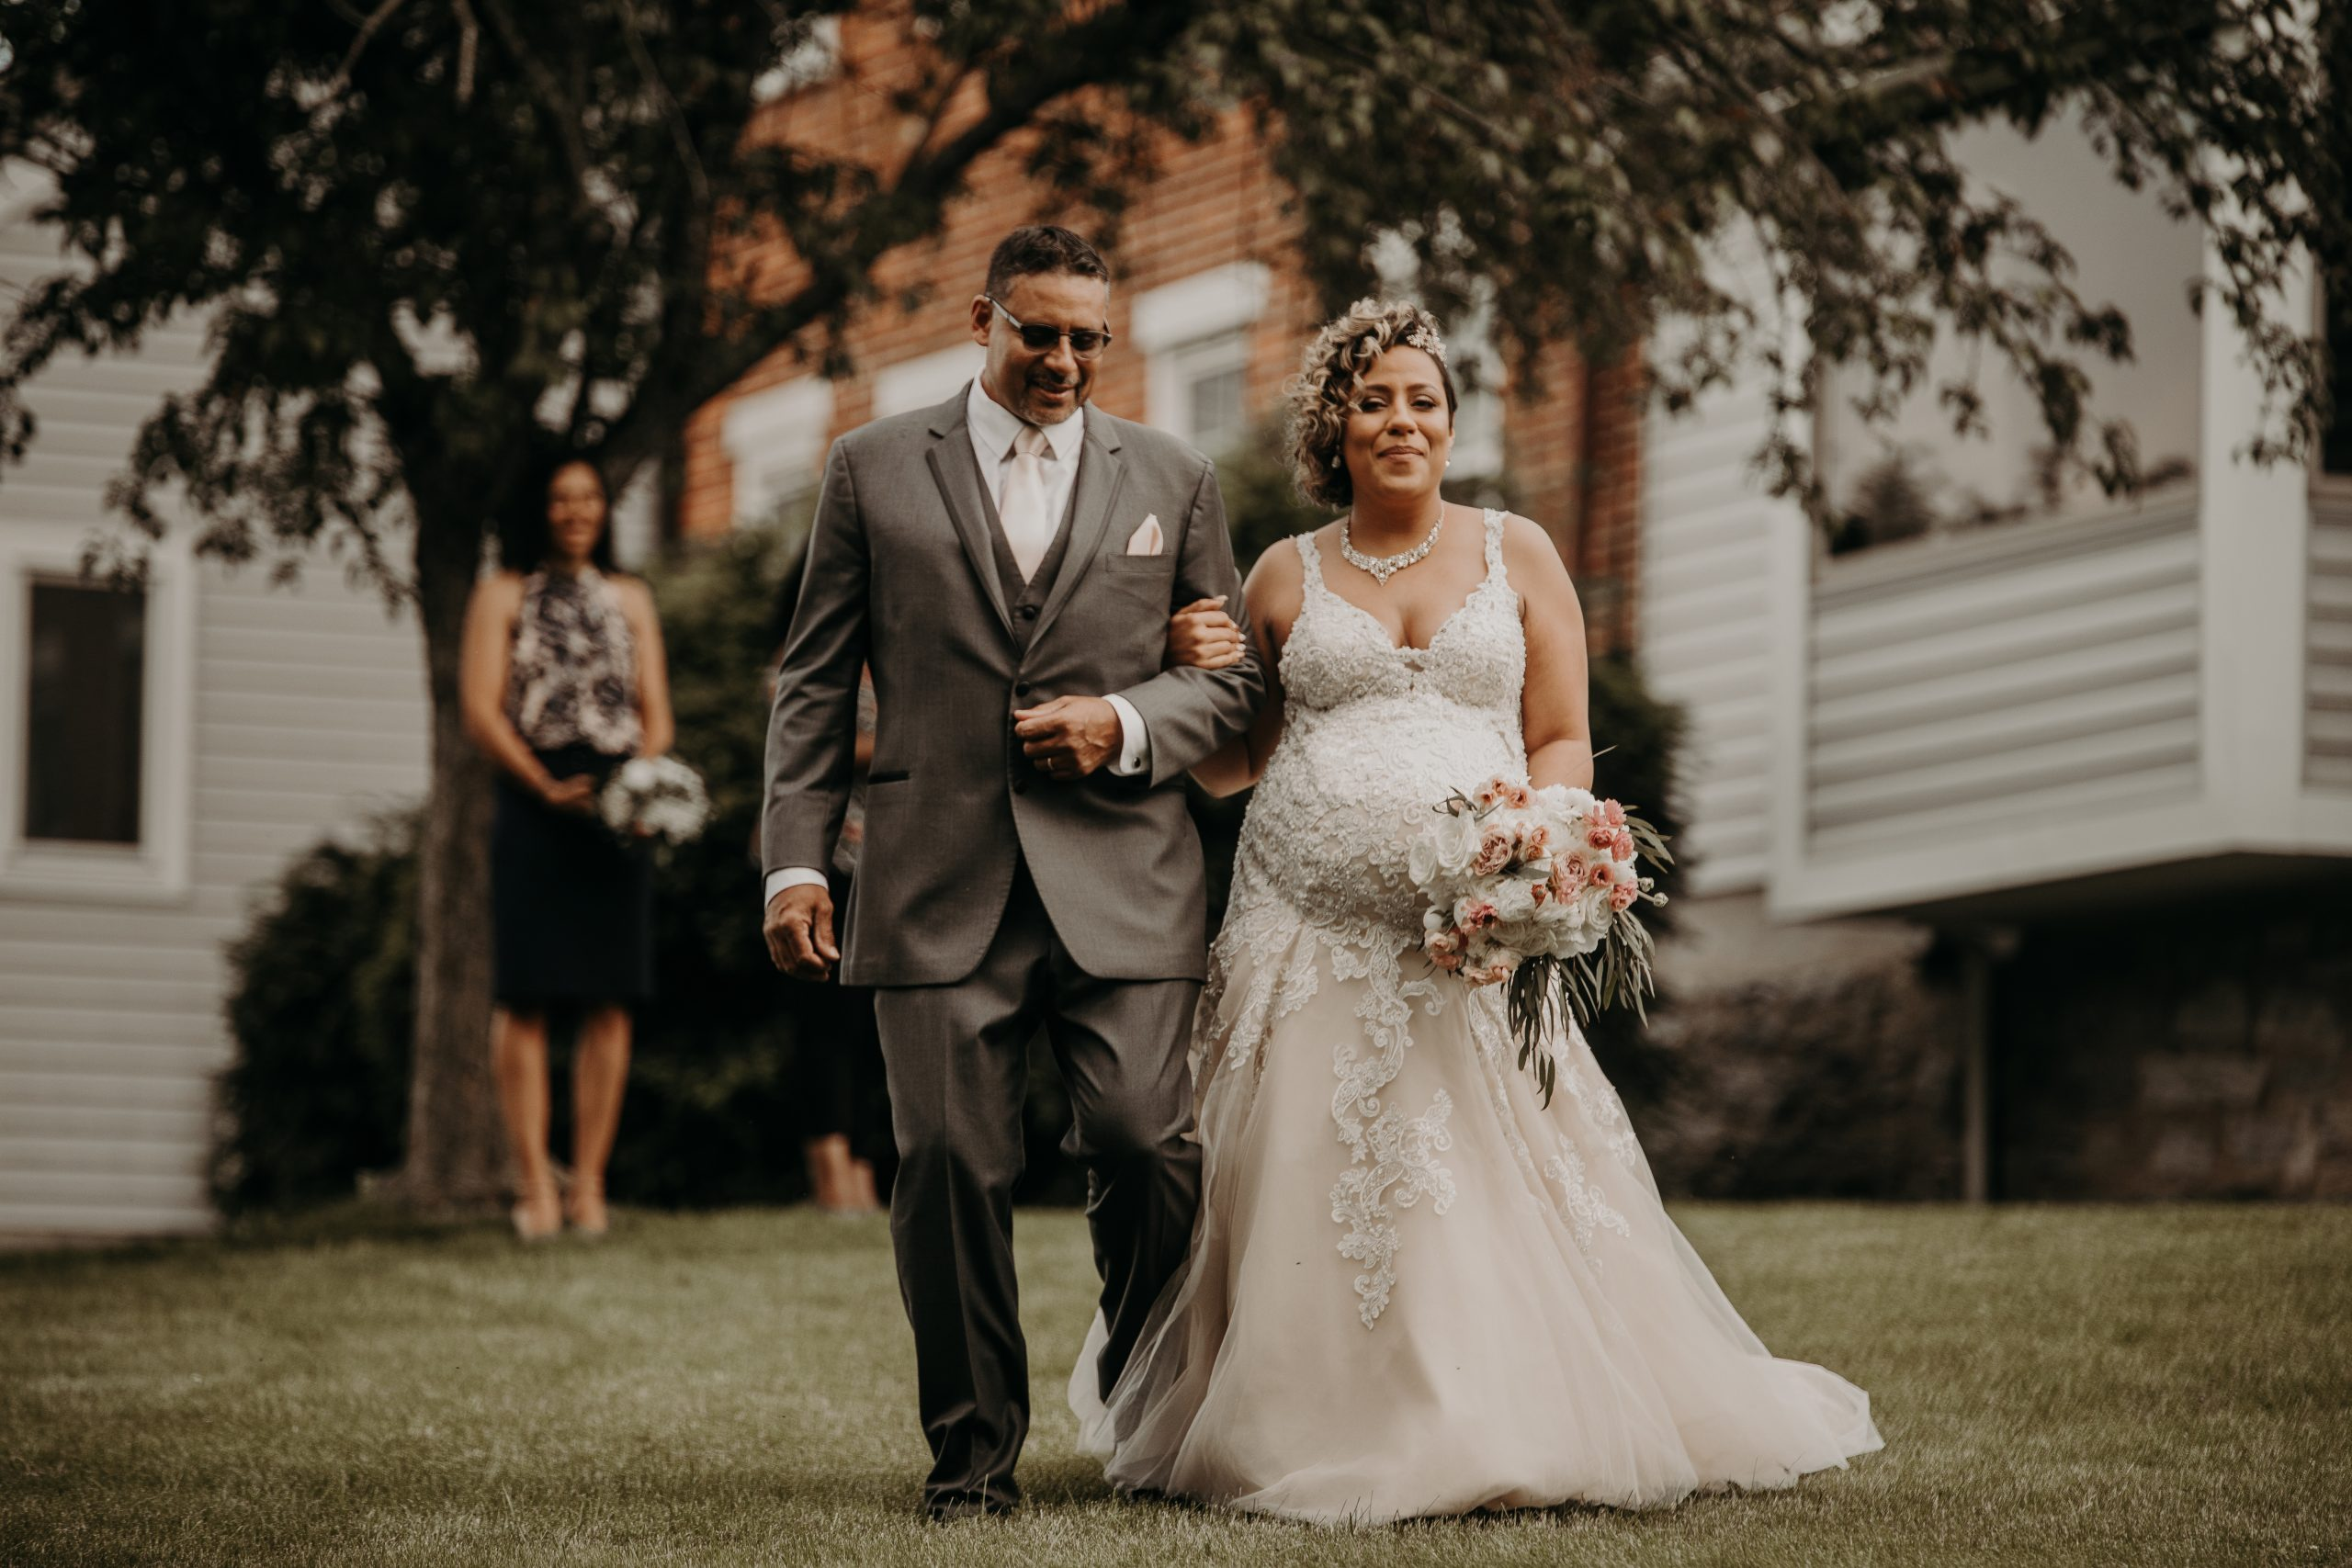 Christine and her father prepare to make their way down the isle, where they will meet Richard at the end. He will give his daughter away. Christine and Richard wed on the Chestnut Hill Villa grounds on May of 2019. This organic ethereal styled wedding was captured by Garnet Dahlia Photography and featured on Dream Weddings.